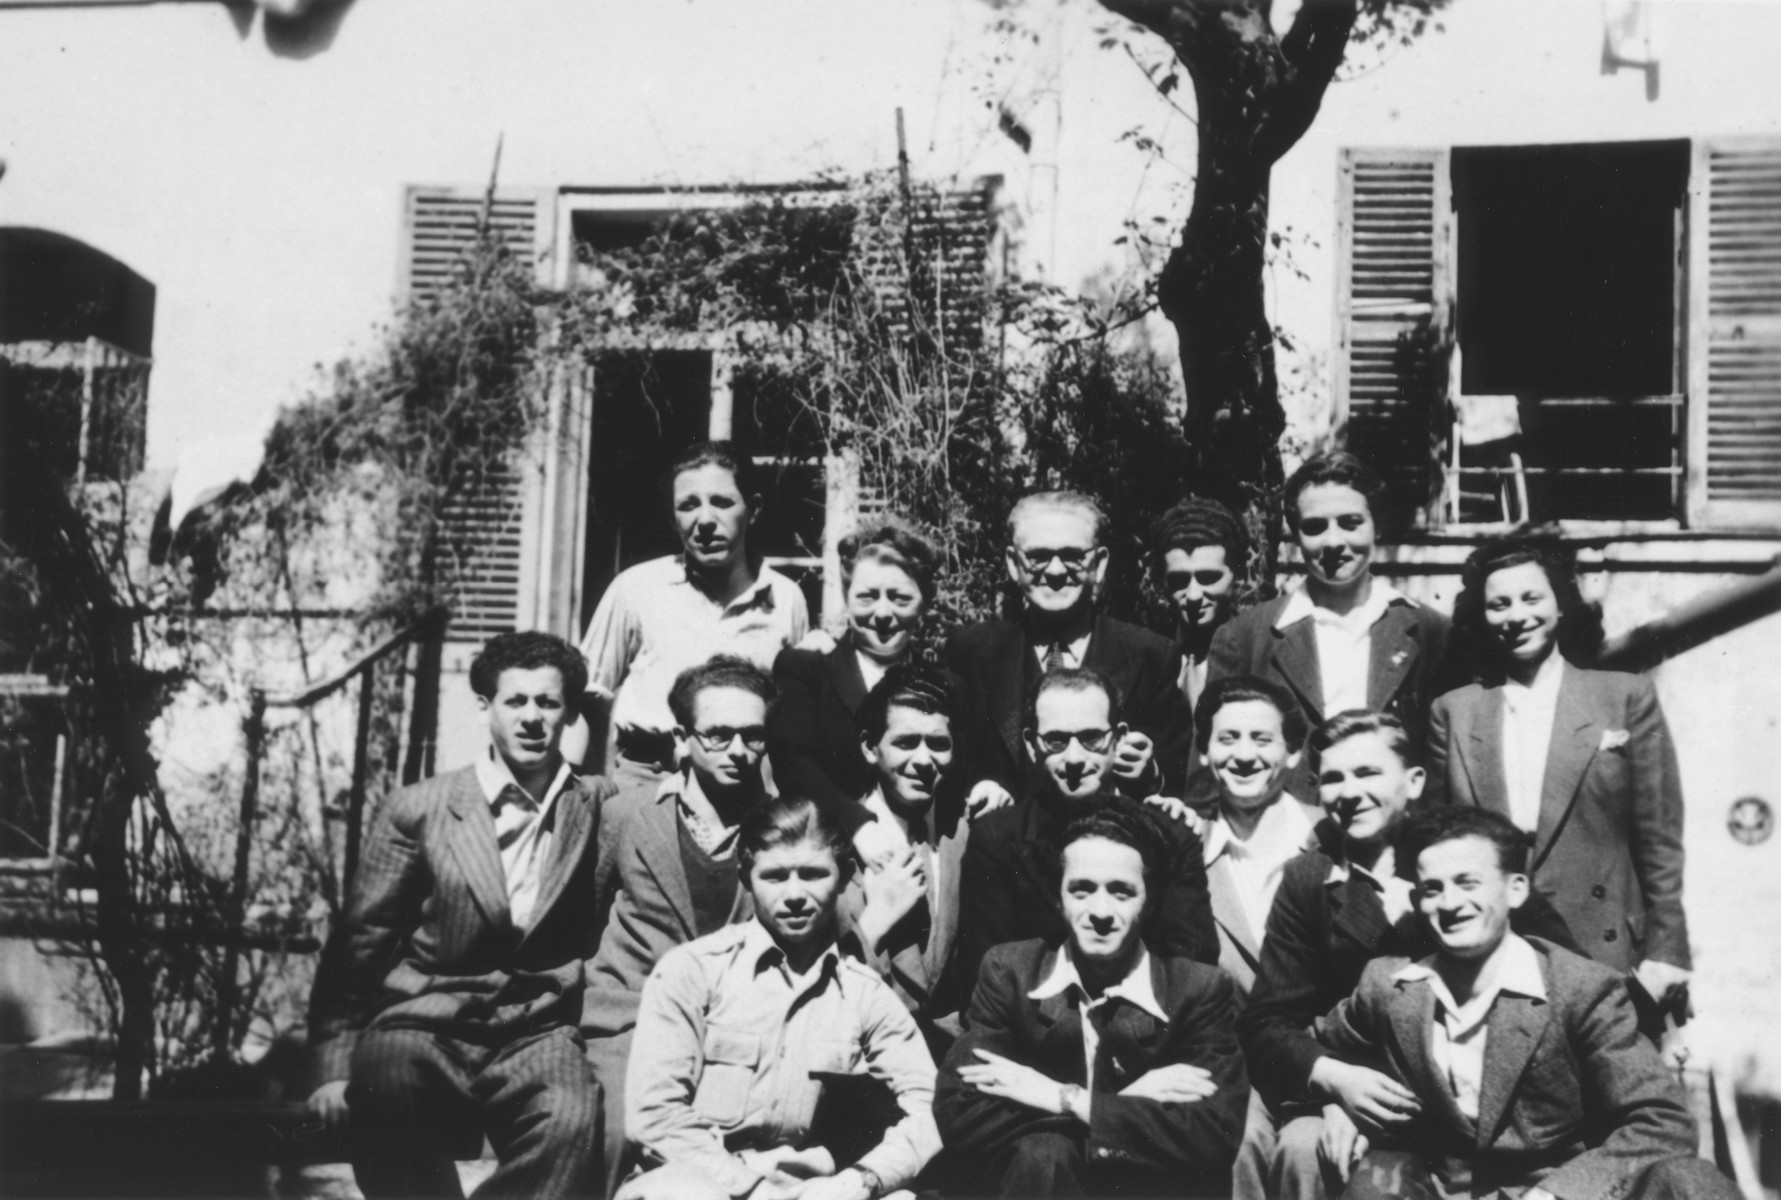 Group portrait of the staff and youth of the OSE children's home on the rue Rollin in Paris.  Pictured from left to right are: Front row: Joseph Magier, Gerson, Asher Greenberg.  Middle row: Lazer Greenberg, unidentified, Peretz Fogel, Joseph Szwarcberg and unidentified.  Top row: Willy Fogel, an elderly couple who brought food to the home, unidentified and Eddie Balter.